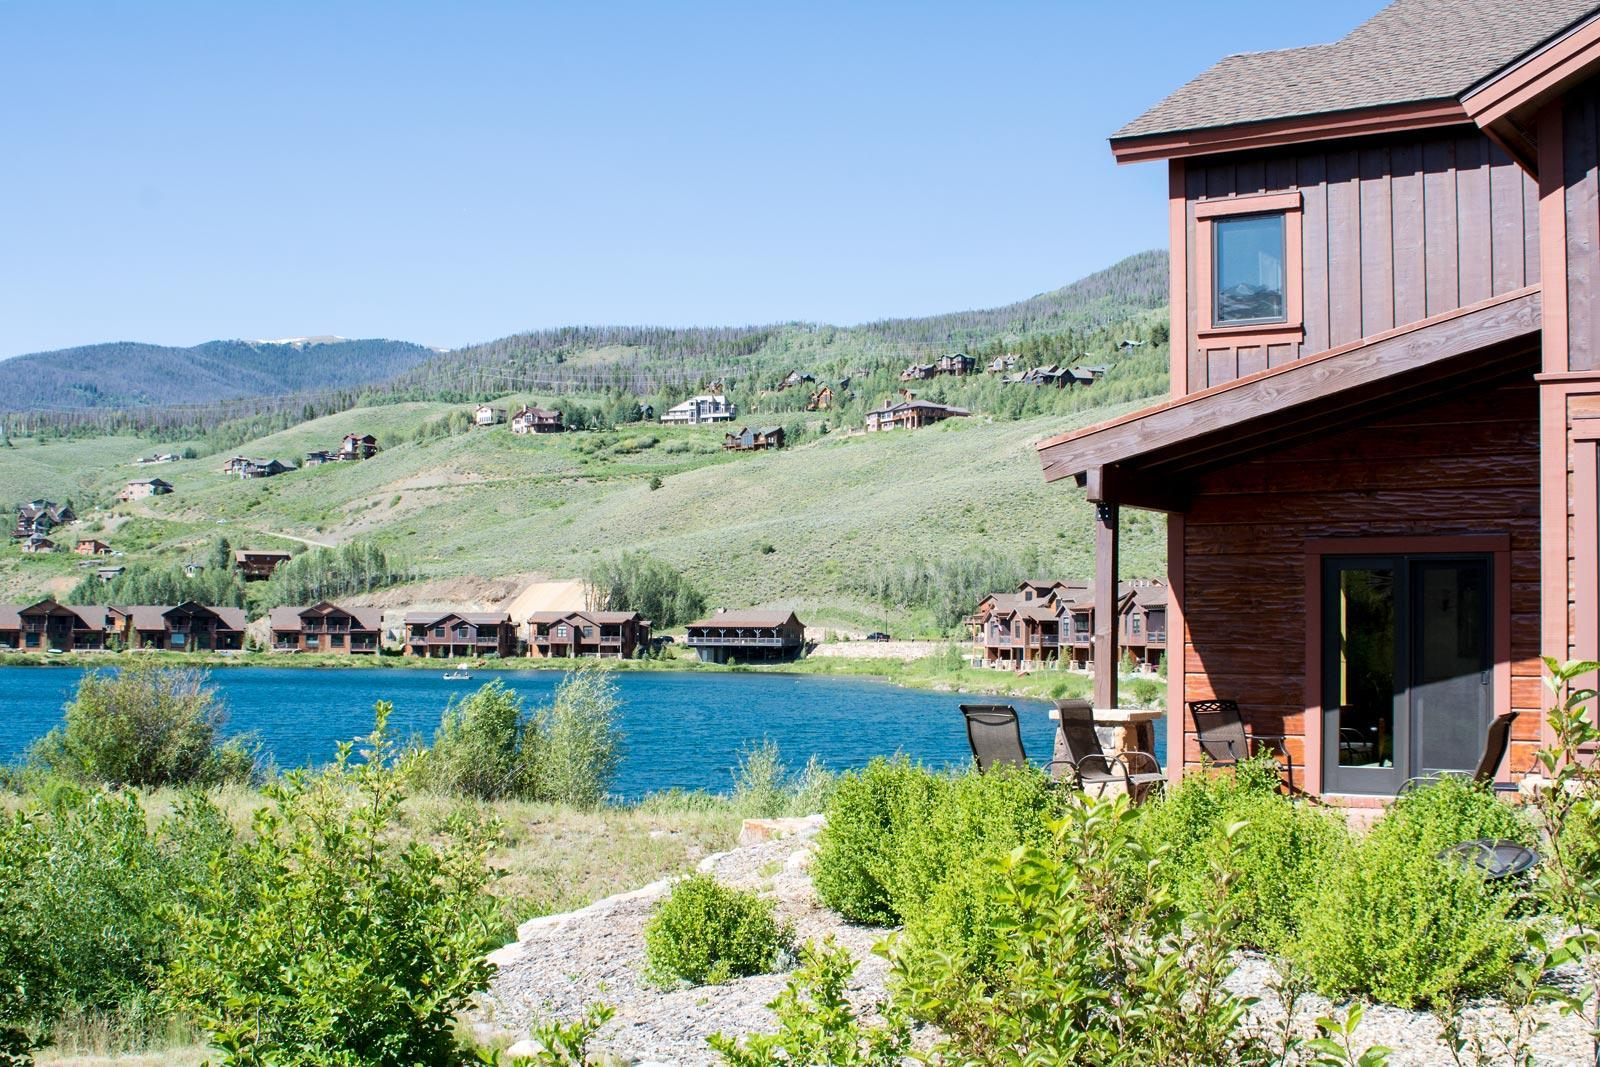 Angler Mountain Ranch centers around a community lake, with homes and duplexes offering a variety of price options.